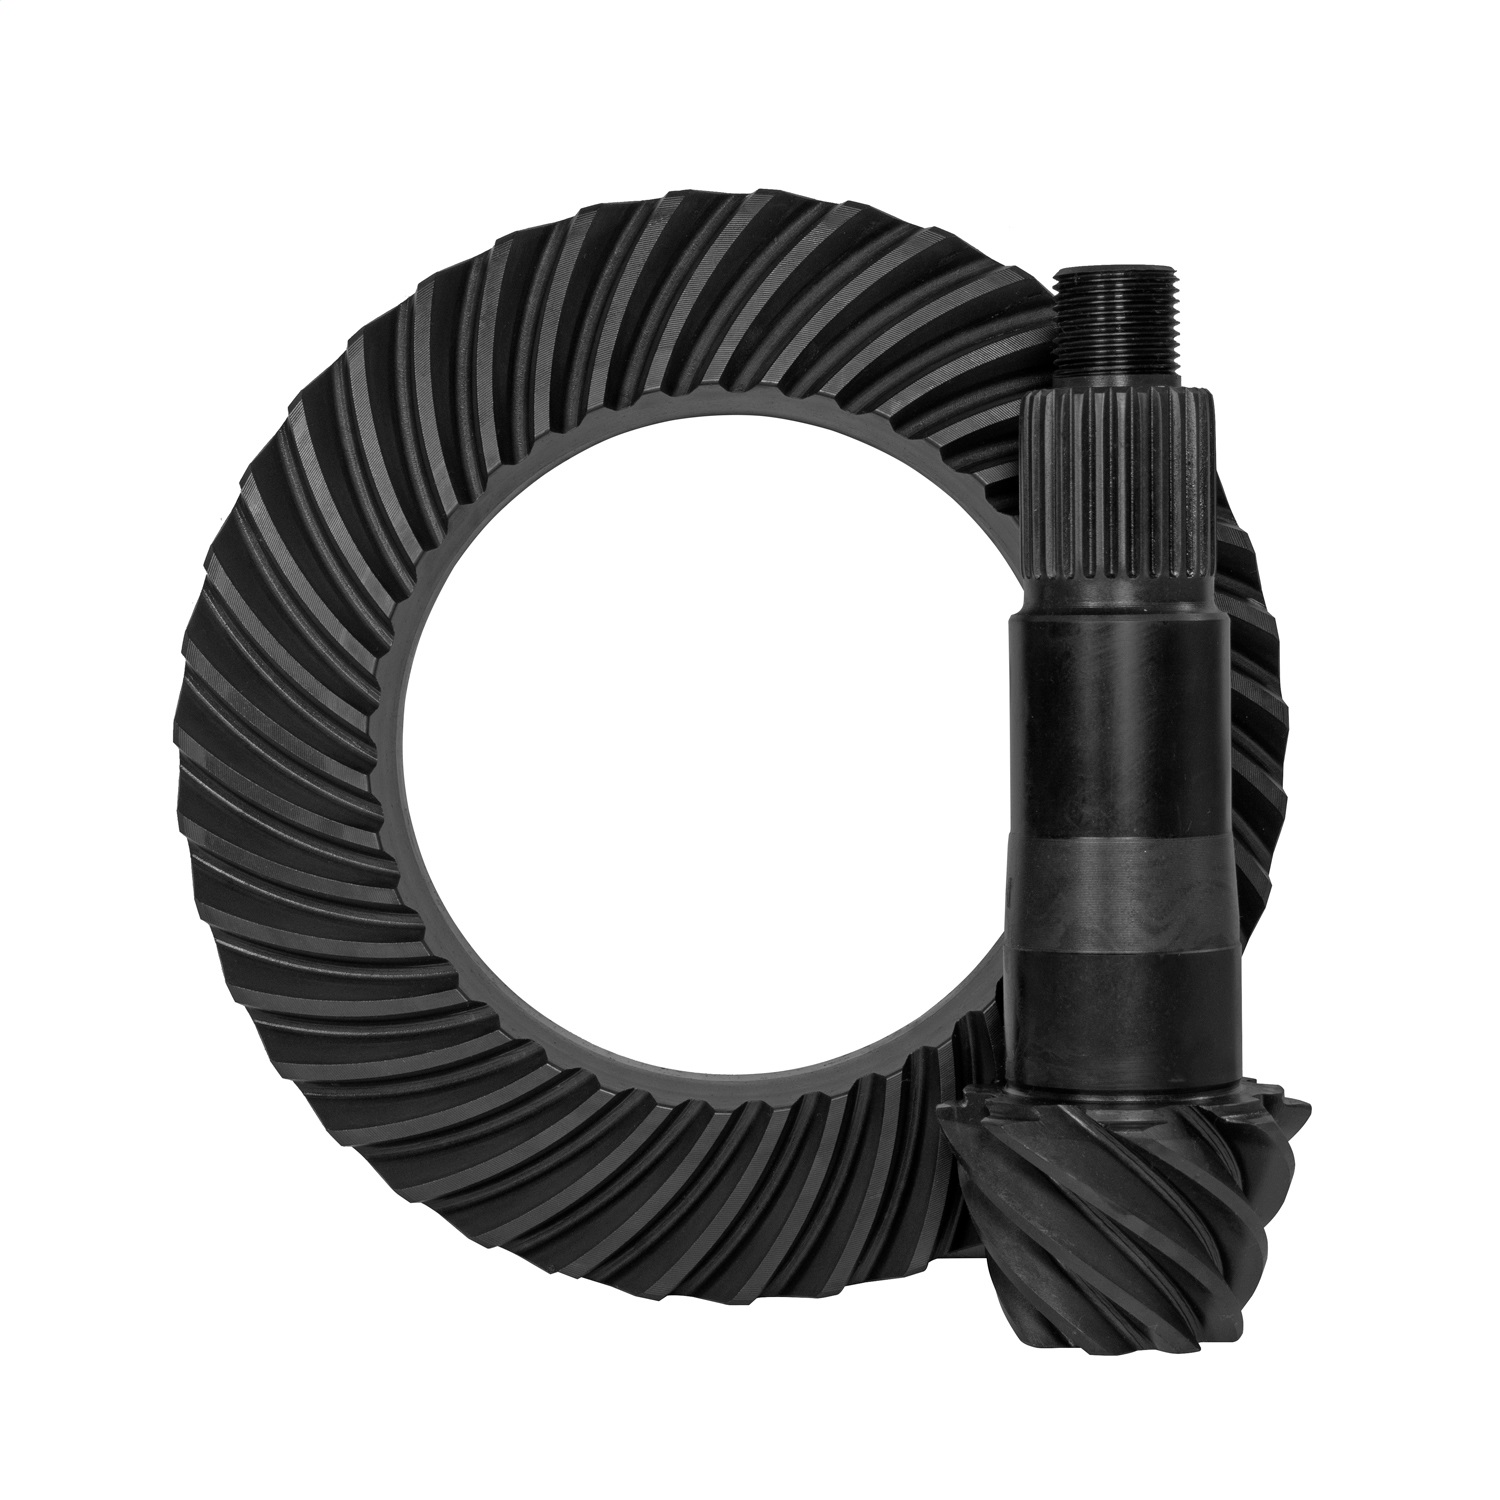 Yukon Gear & Axle YG D44JL-488 Differential Ring and Pinion Fits Wrangler (JL)